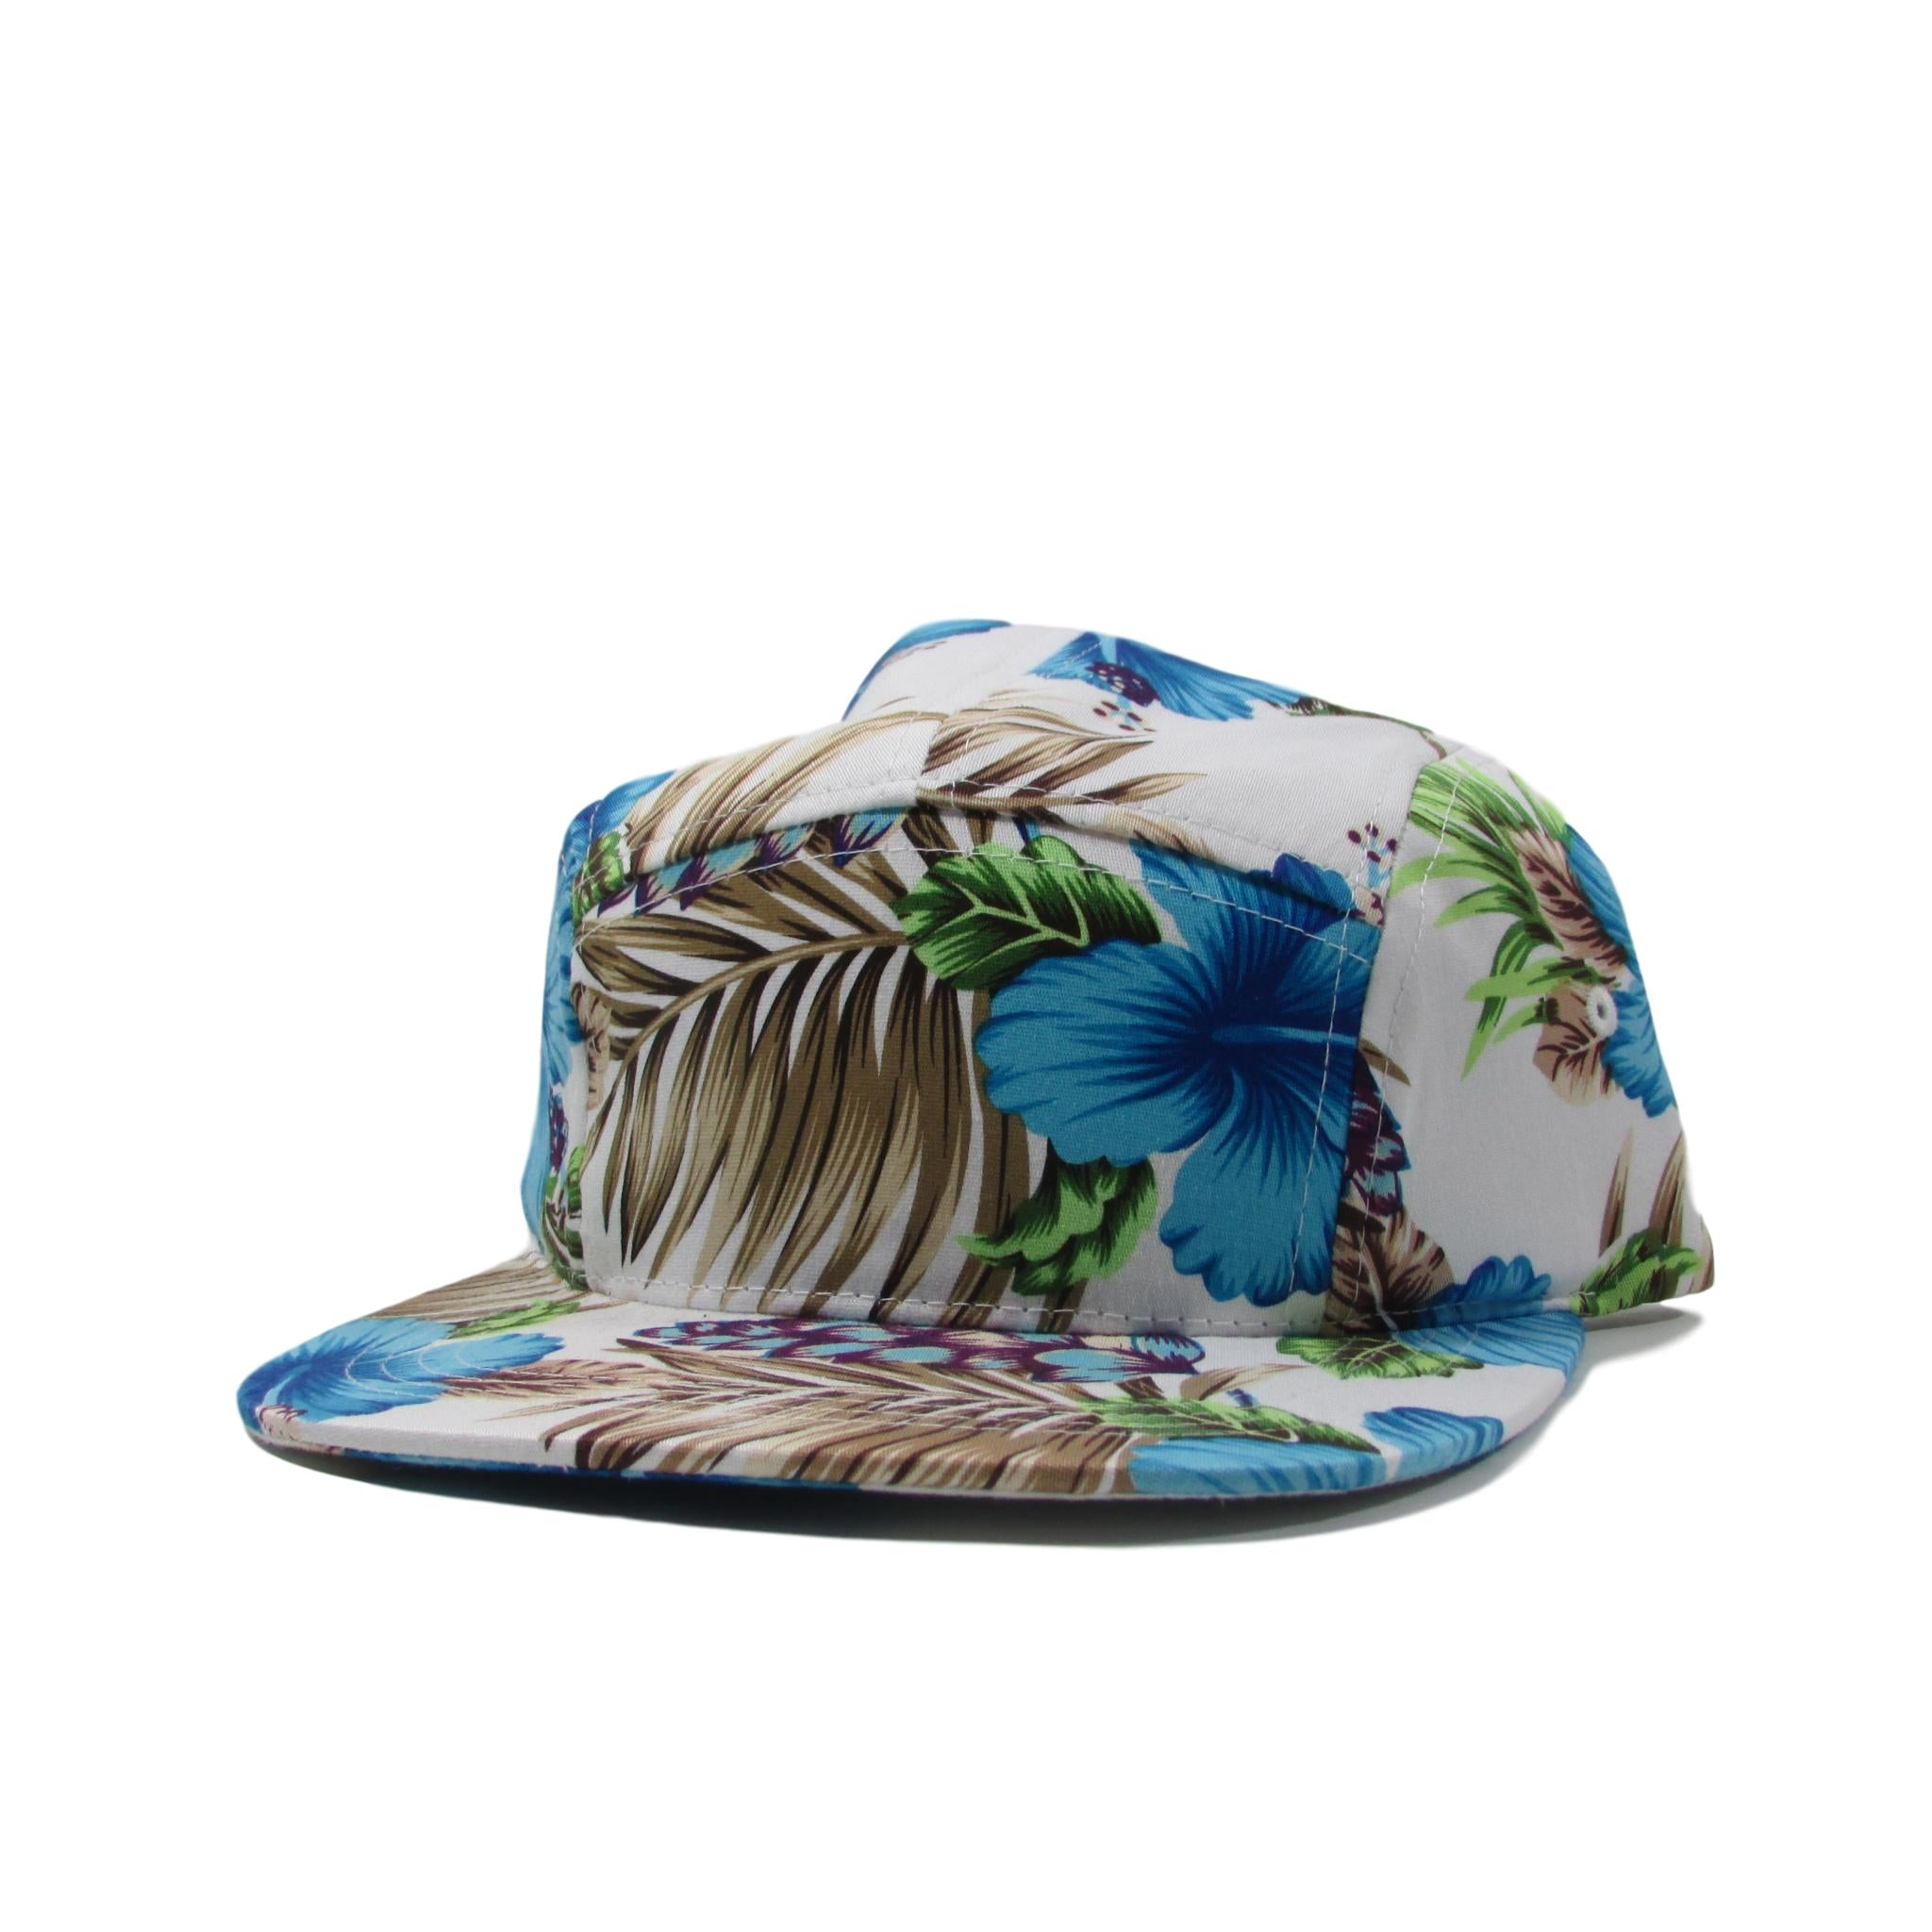 BK Caps Hawaiian Blue Floral 5 Panel Leather Strapback Hat